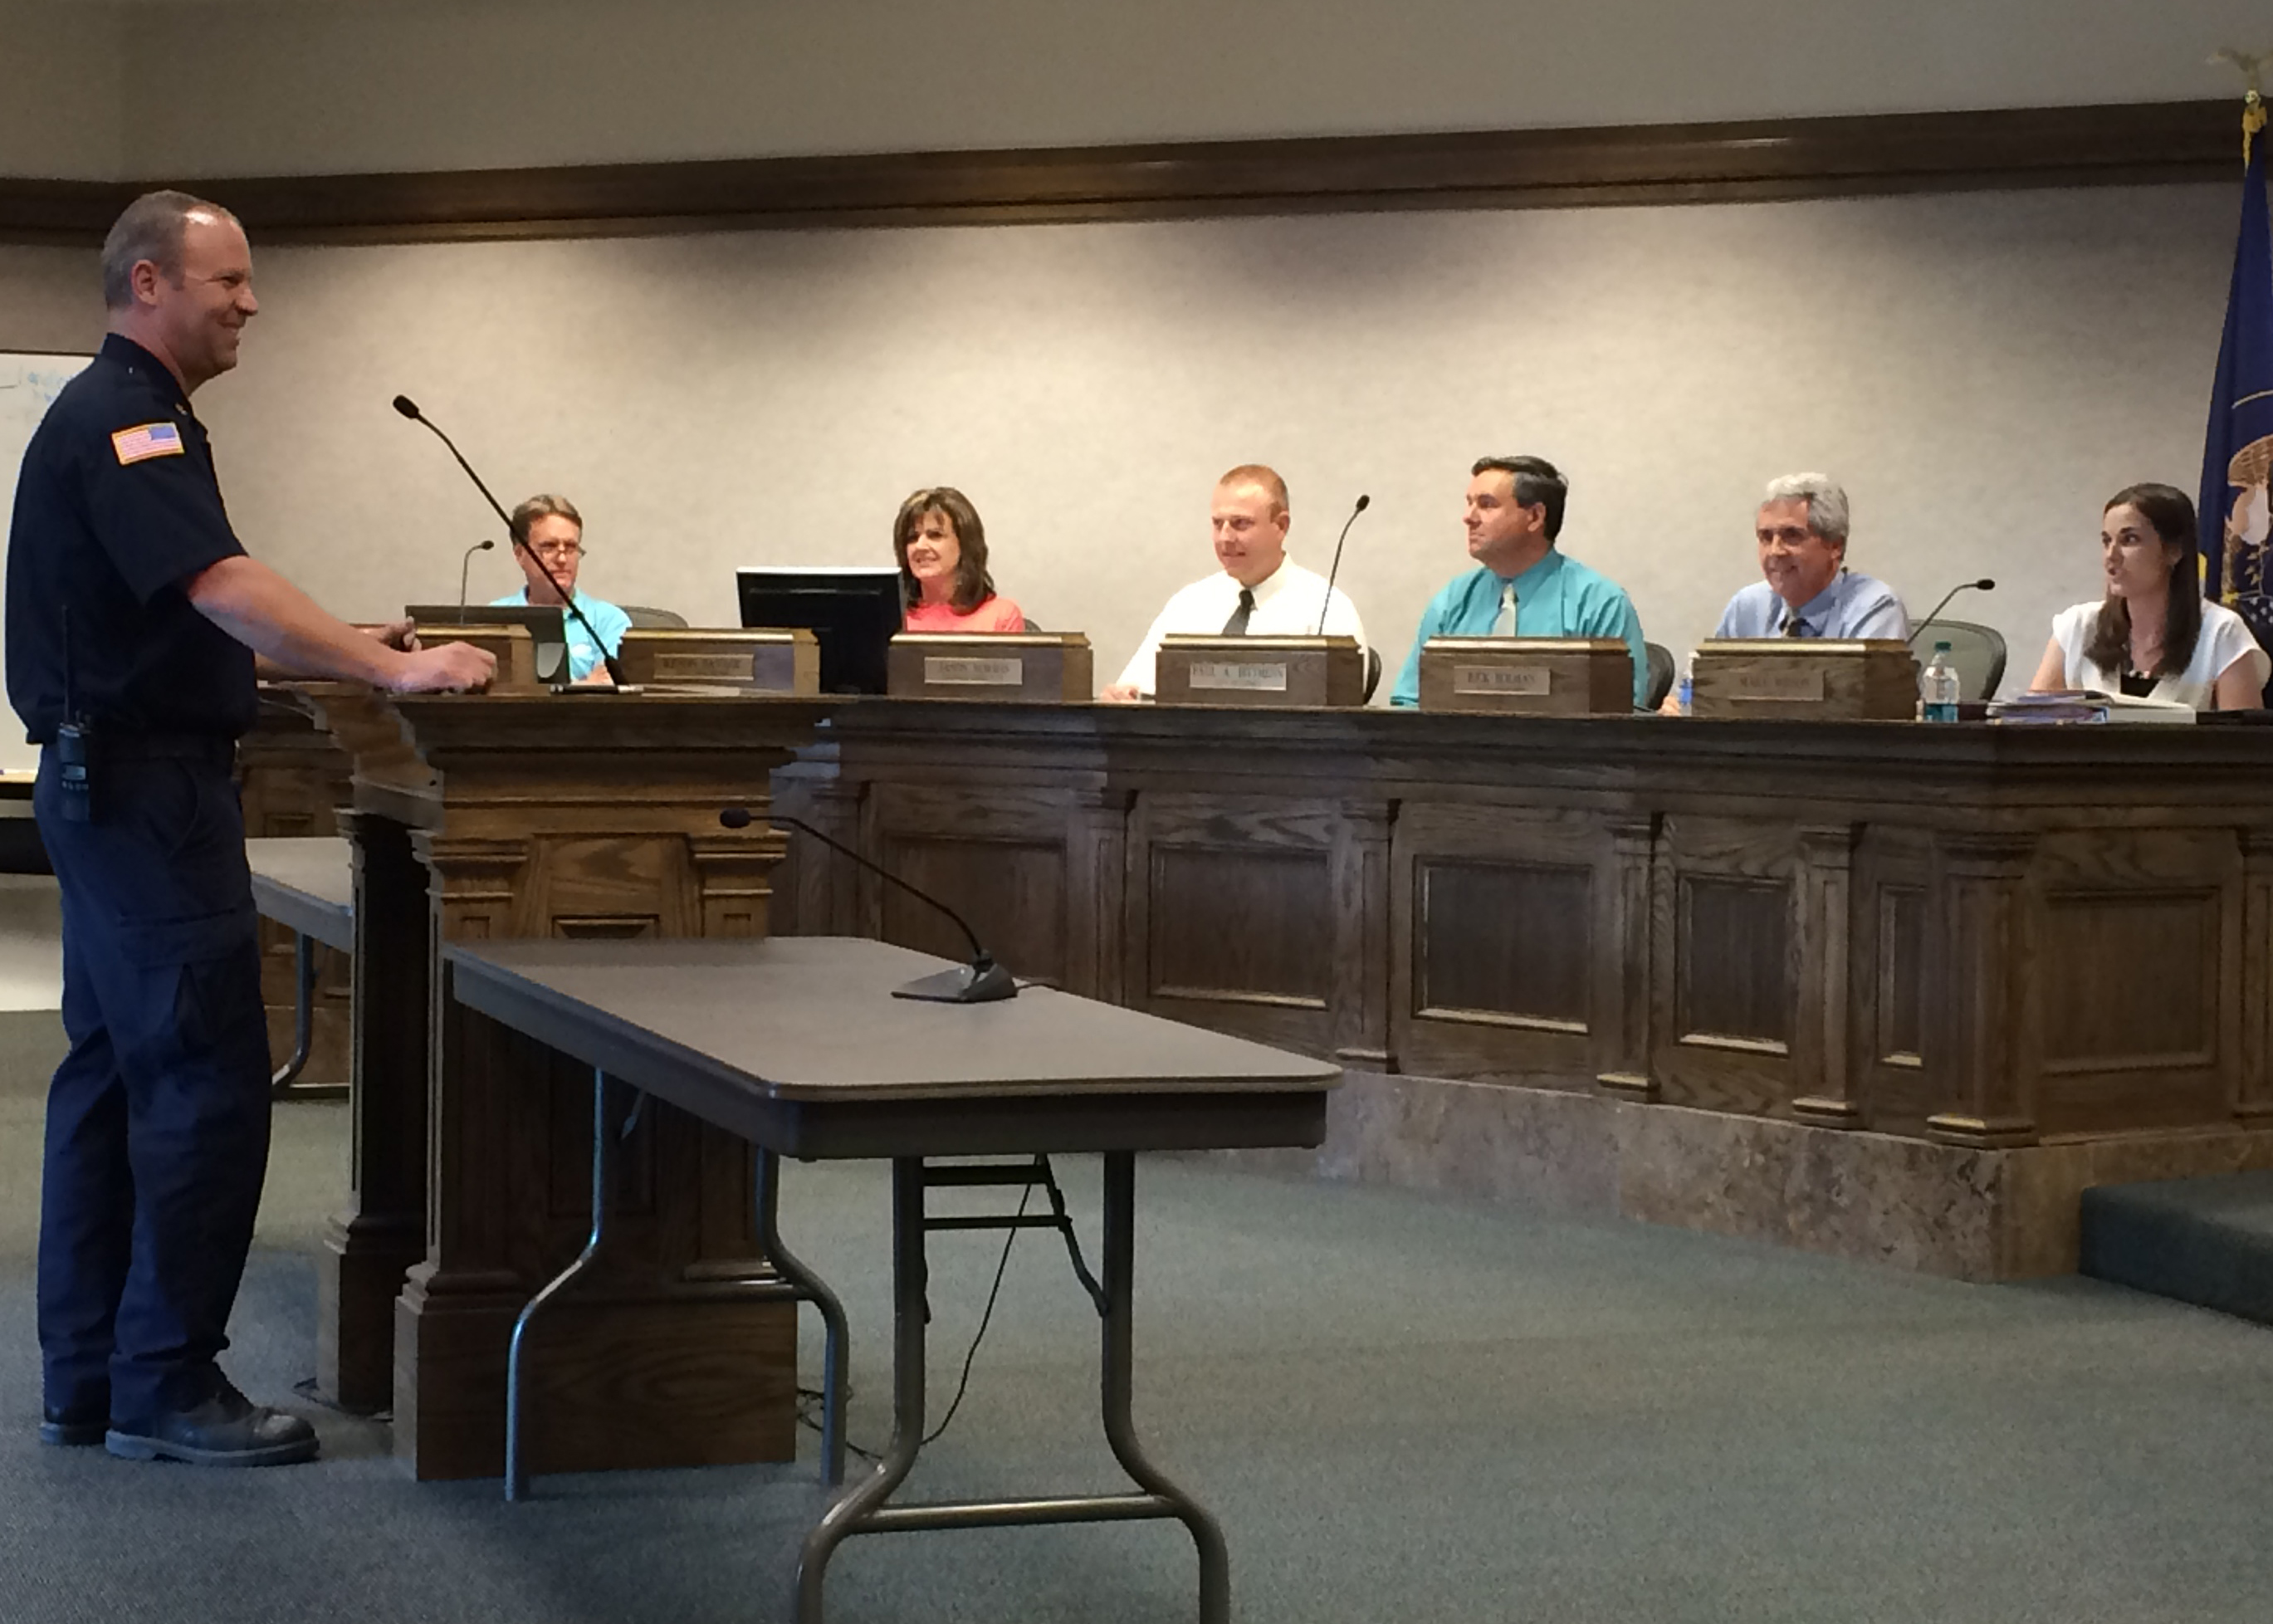 New Cedar City Fire Marshal shares a bit about himself with the crowd, Cedar City Council Chambers, Cedar City, Utah, June 17, 2015 | Photo by Carin Miller, St. George News